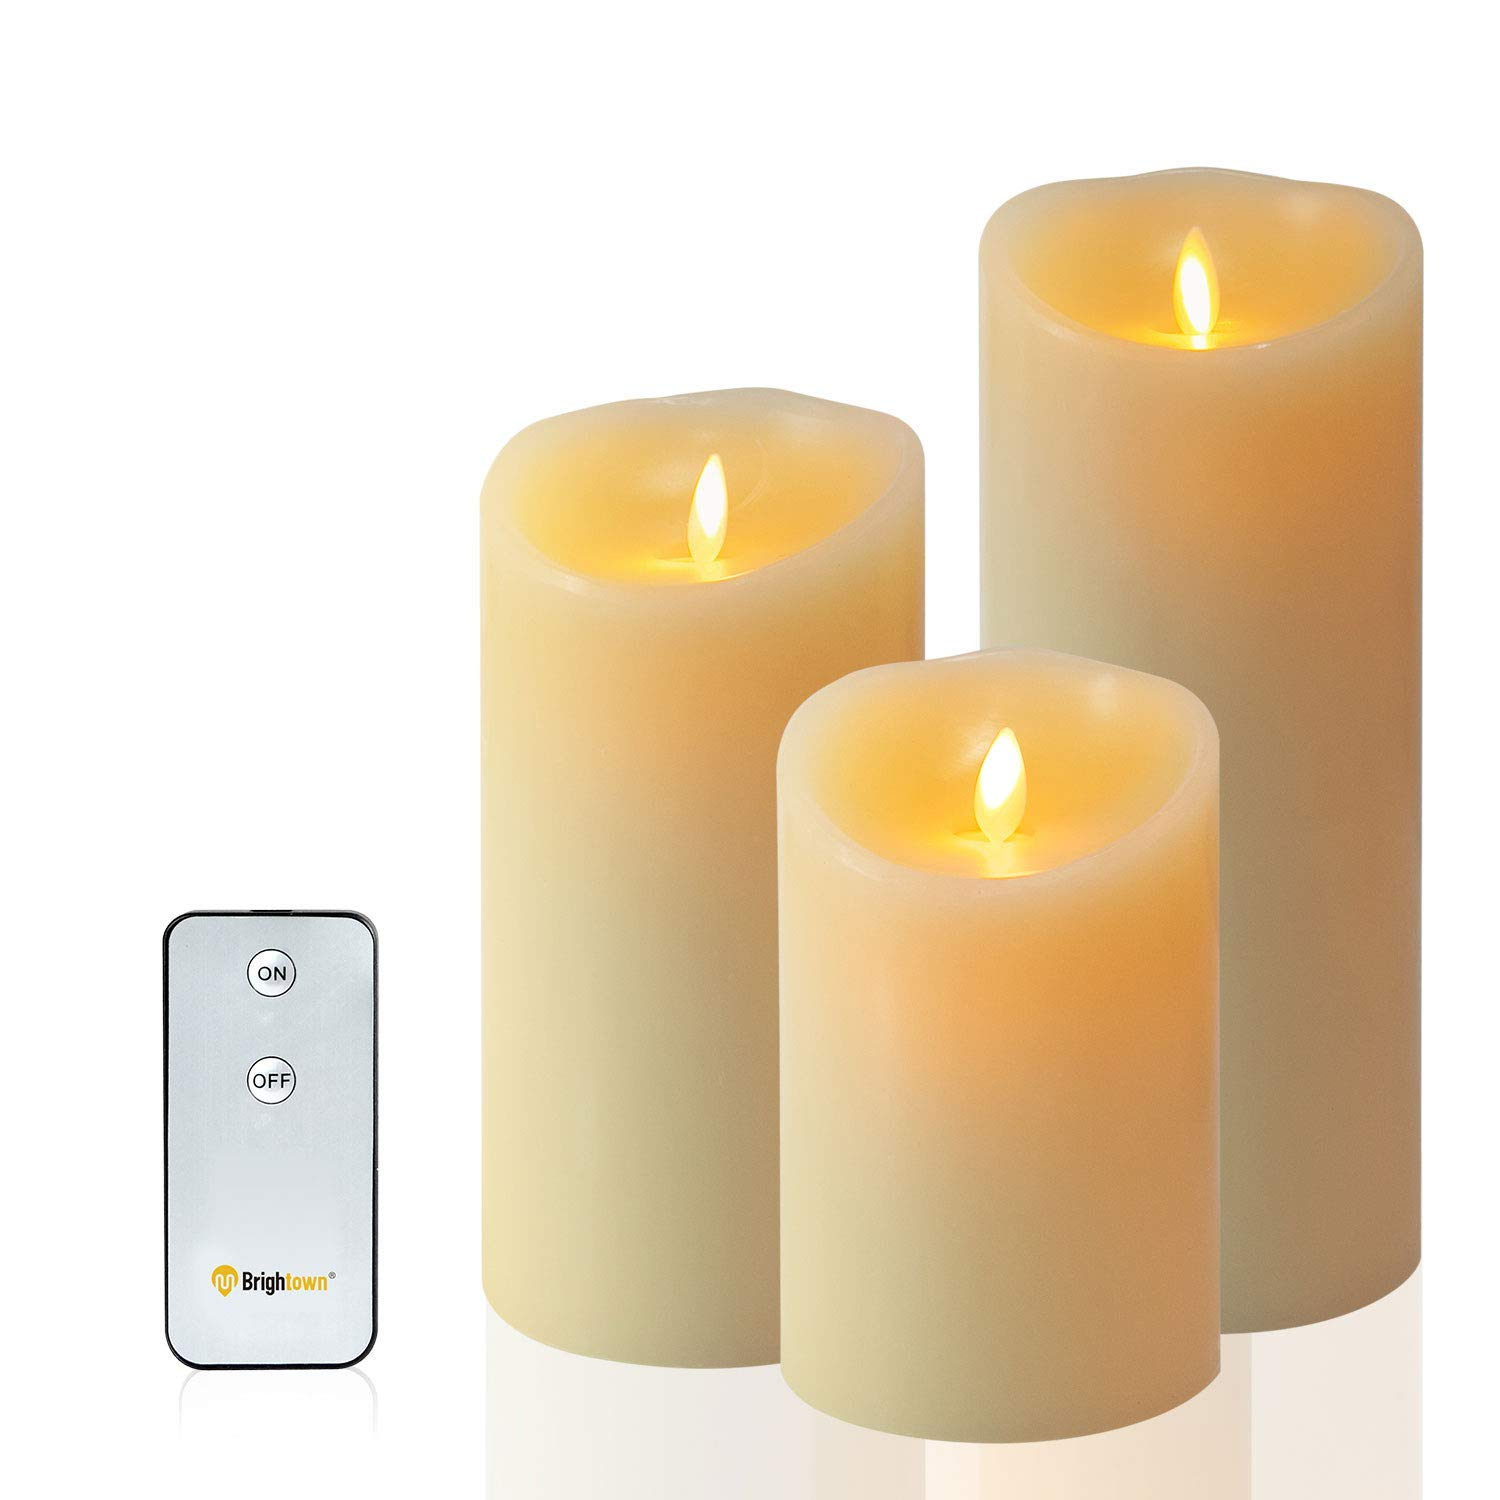 Flameless Candles, LED Battery Operated Pillar Real Wax Flickering Candle with Remote and Timer for Birthday Party Christmas Decoration Set of 3,3.5-Inch by 5/7/9-Inch by Brightown